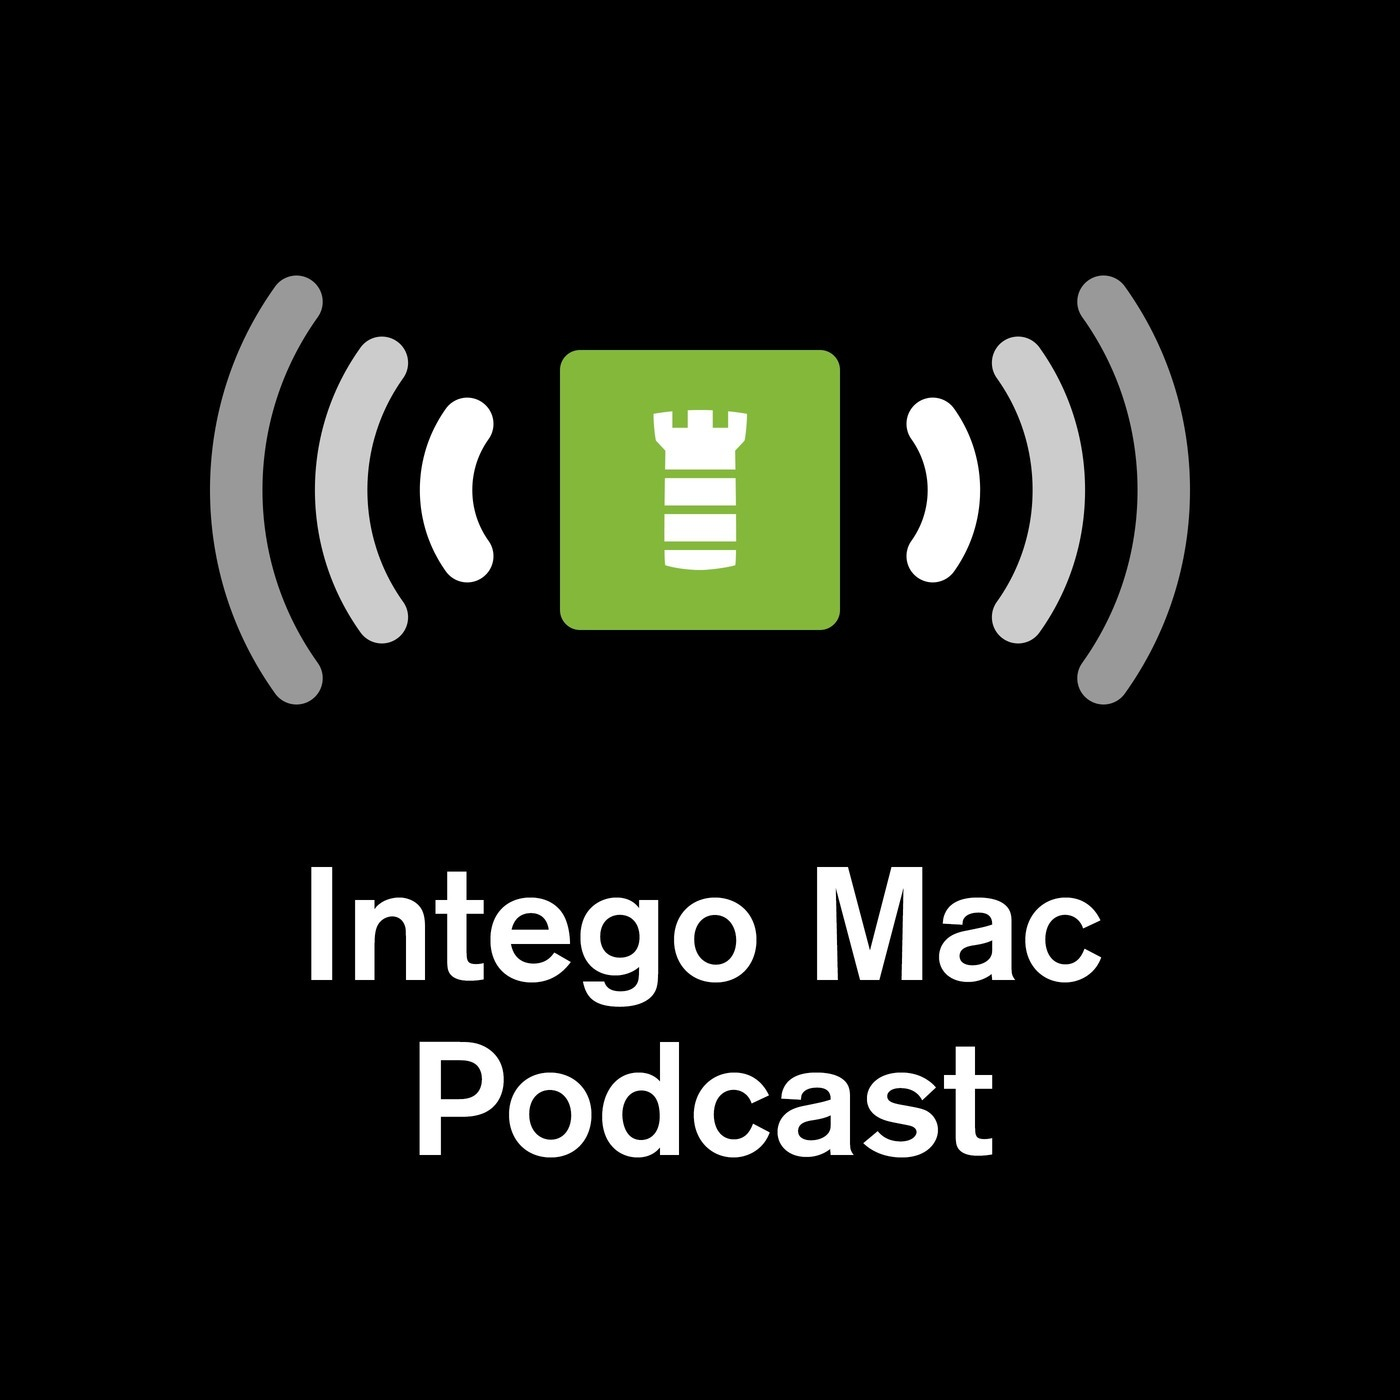 Intego Mac Podcast: Twitter Trickery, Charging Insecurity, Cryptocurrency Malware, and More